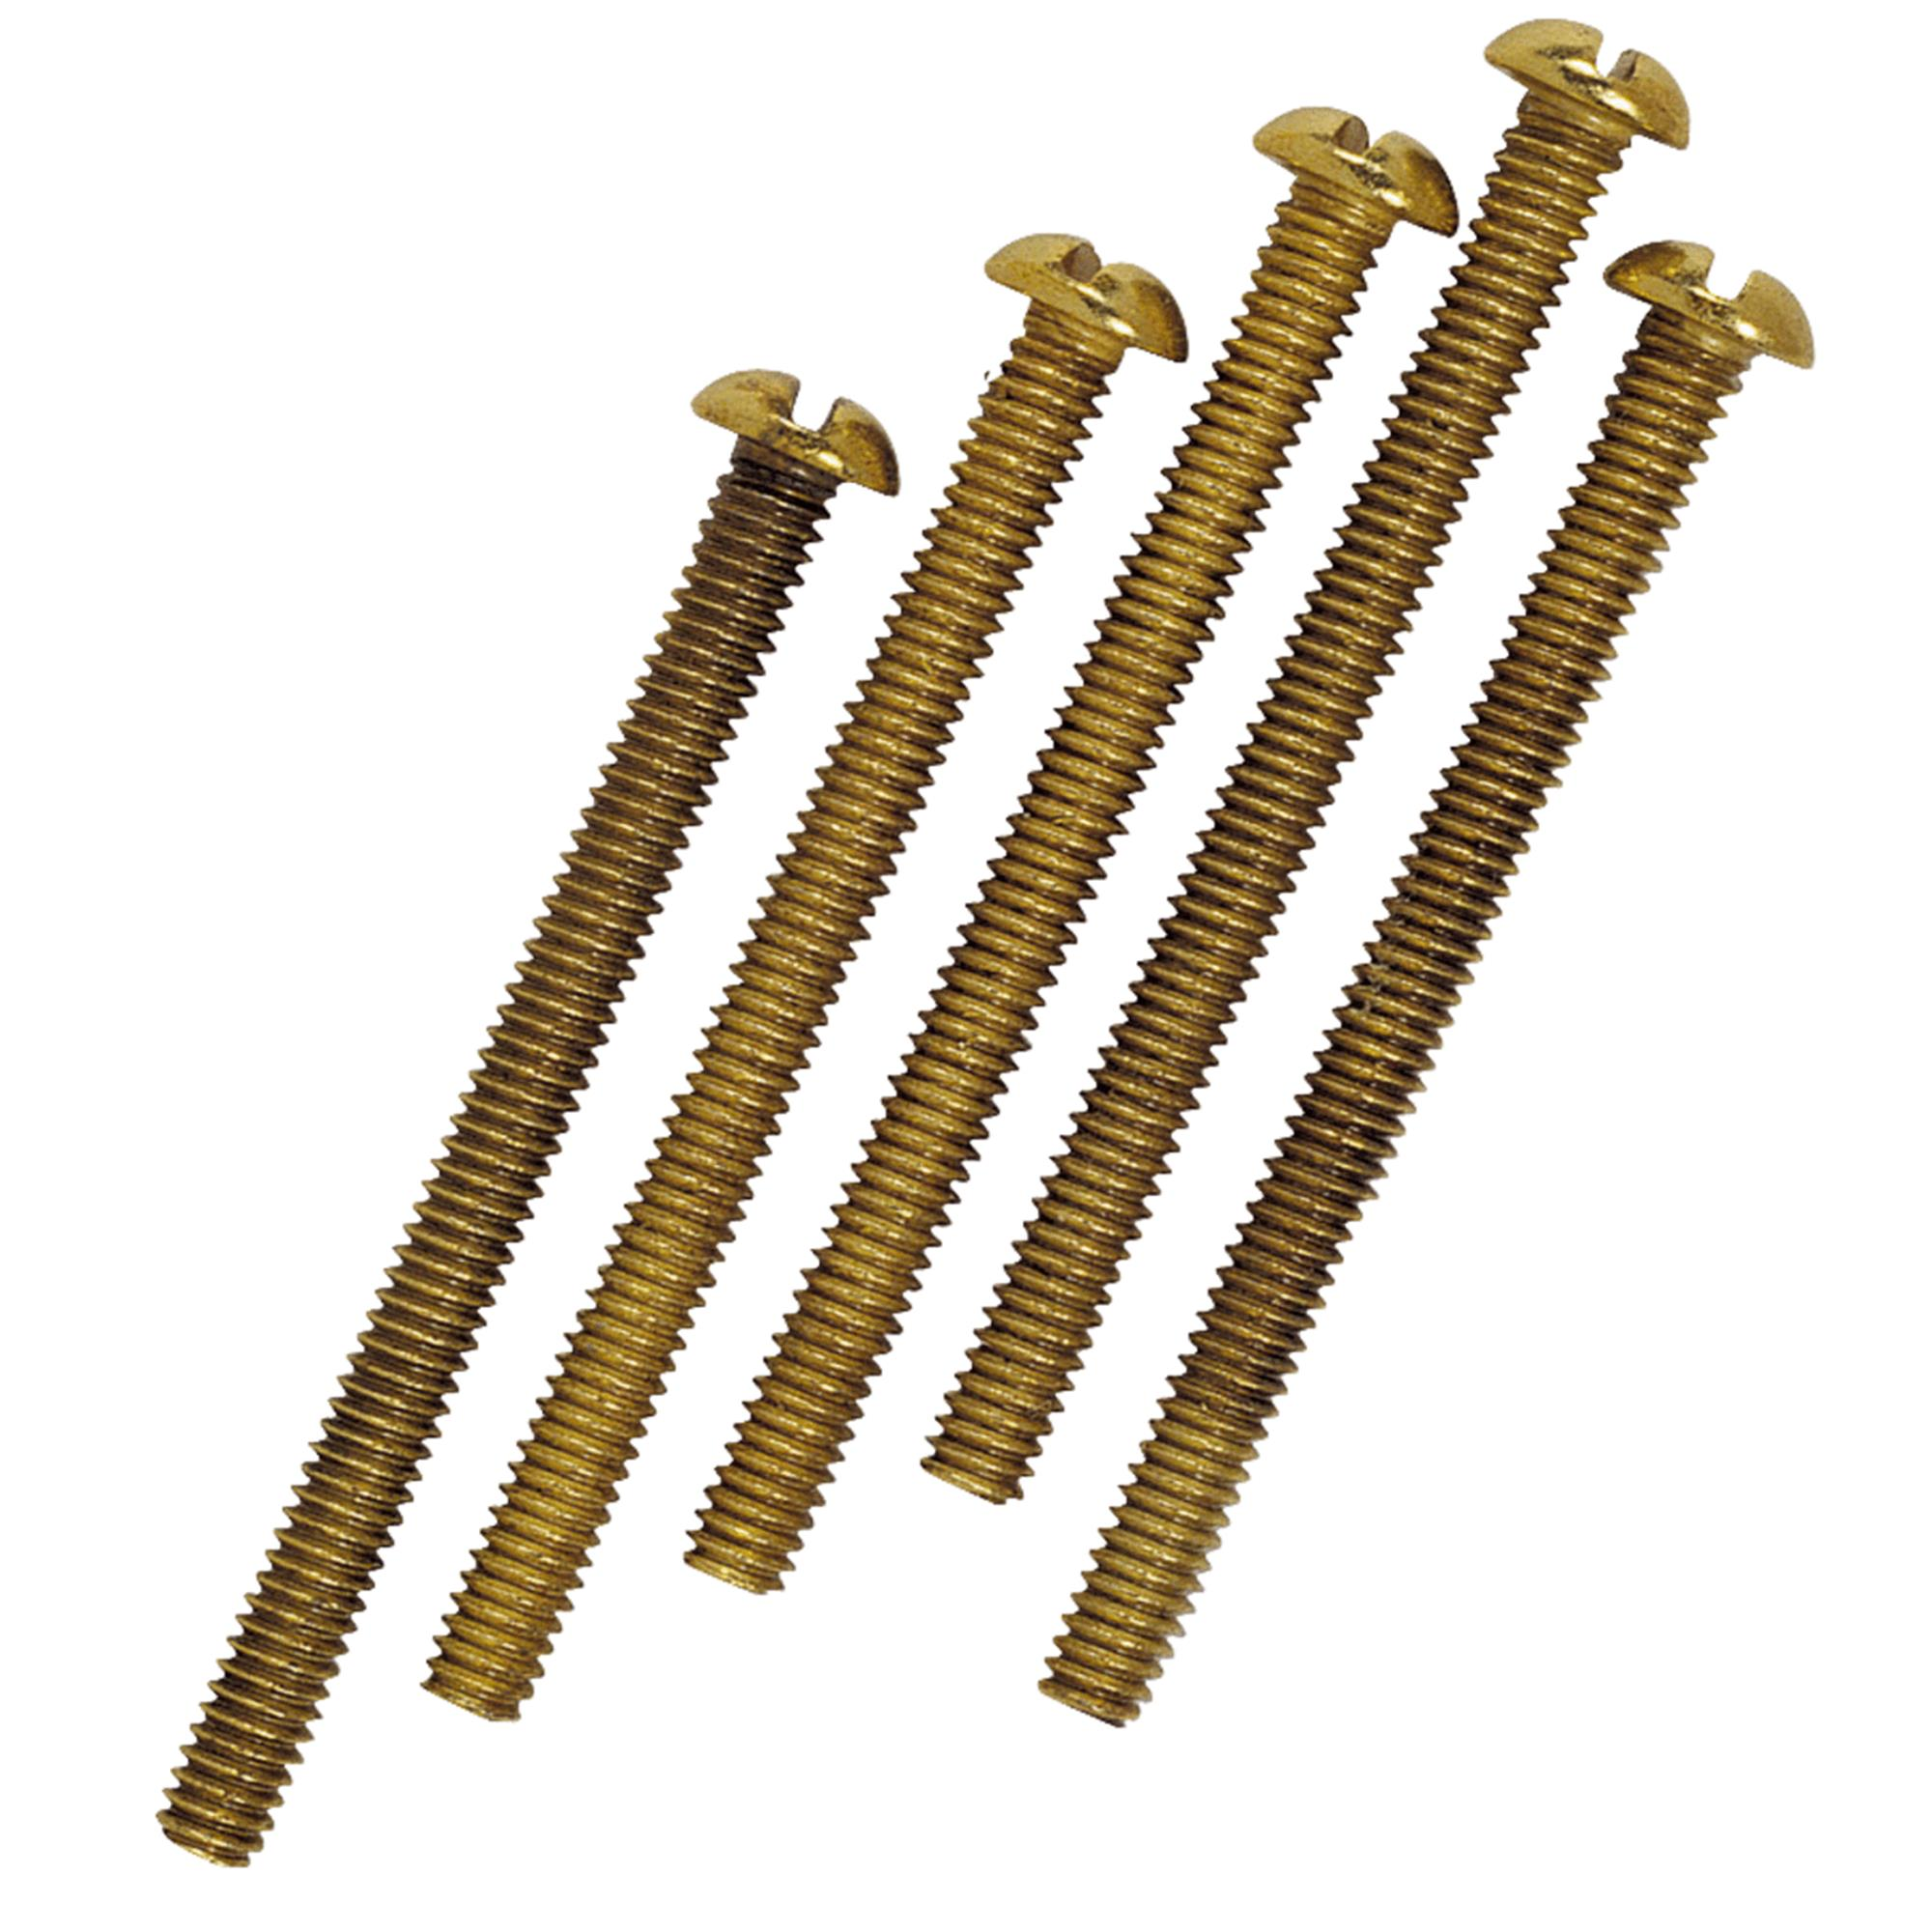 "Westinghouse 2"" Long Round Head Fixture Screws"